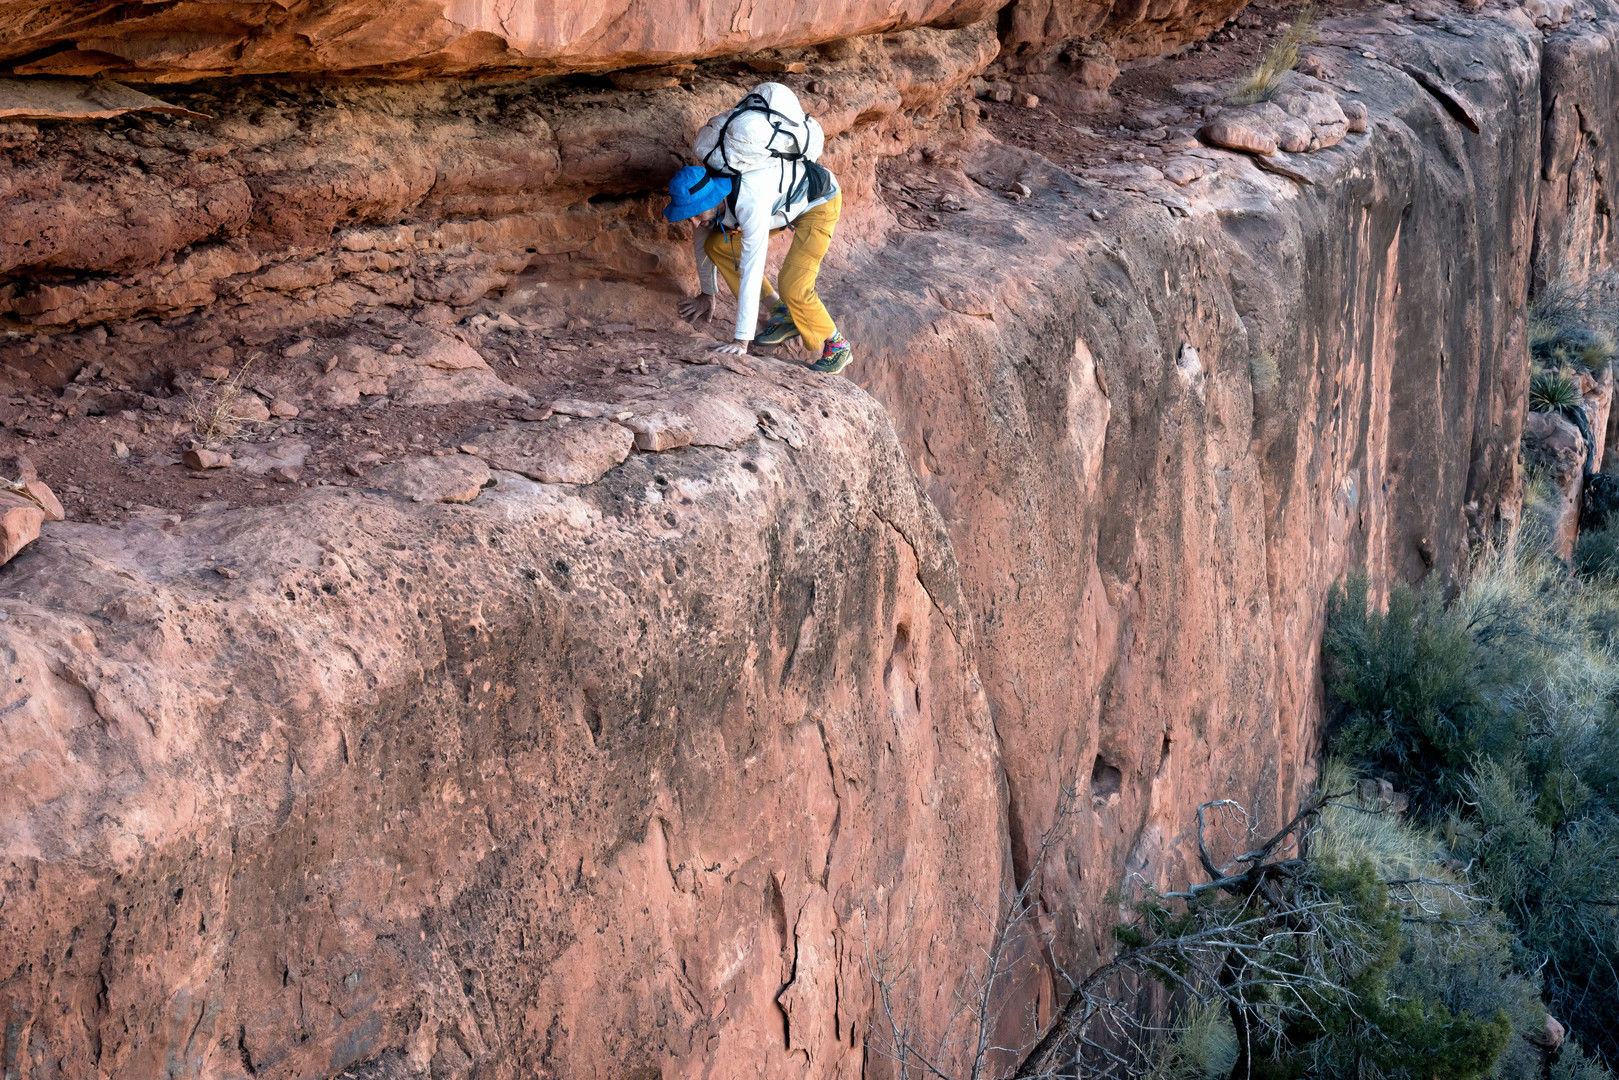 Keith Peterson scrambling in the Grand Canyon